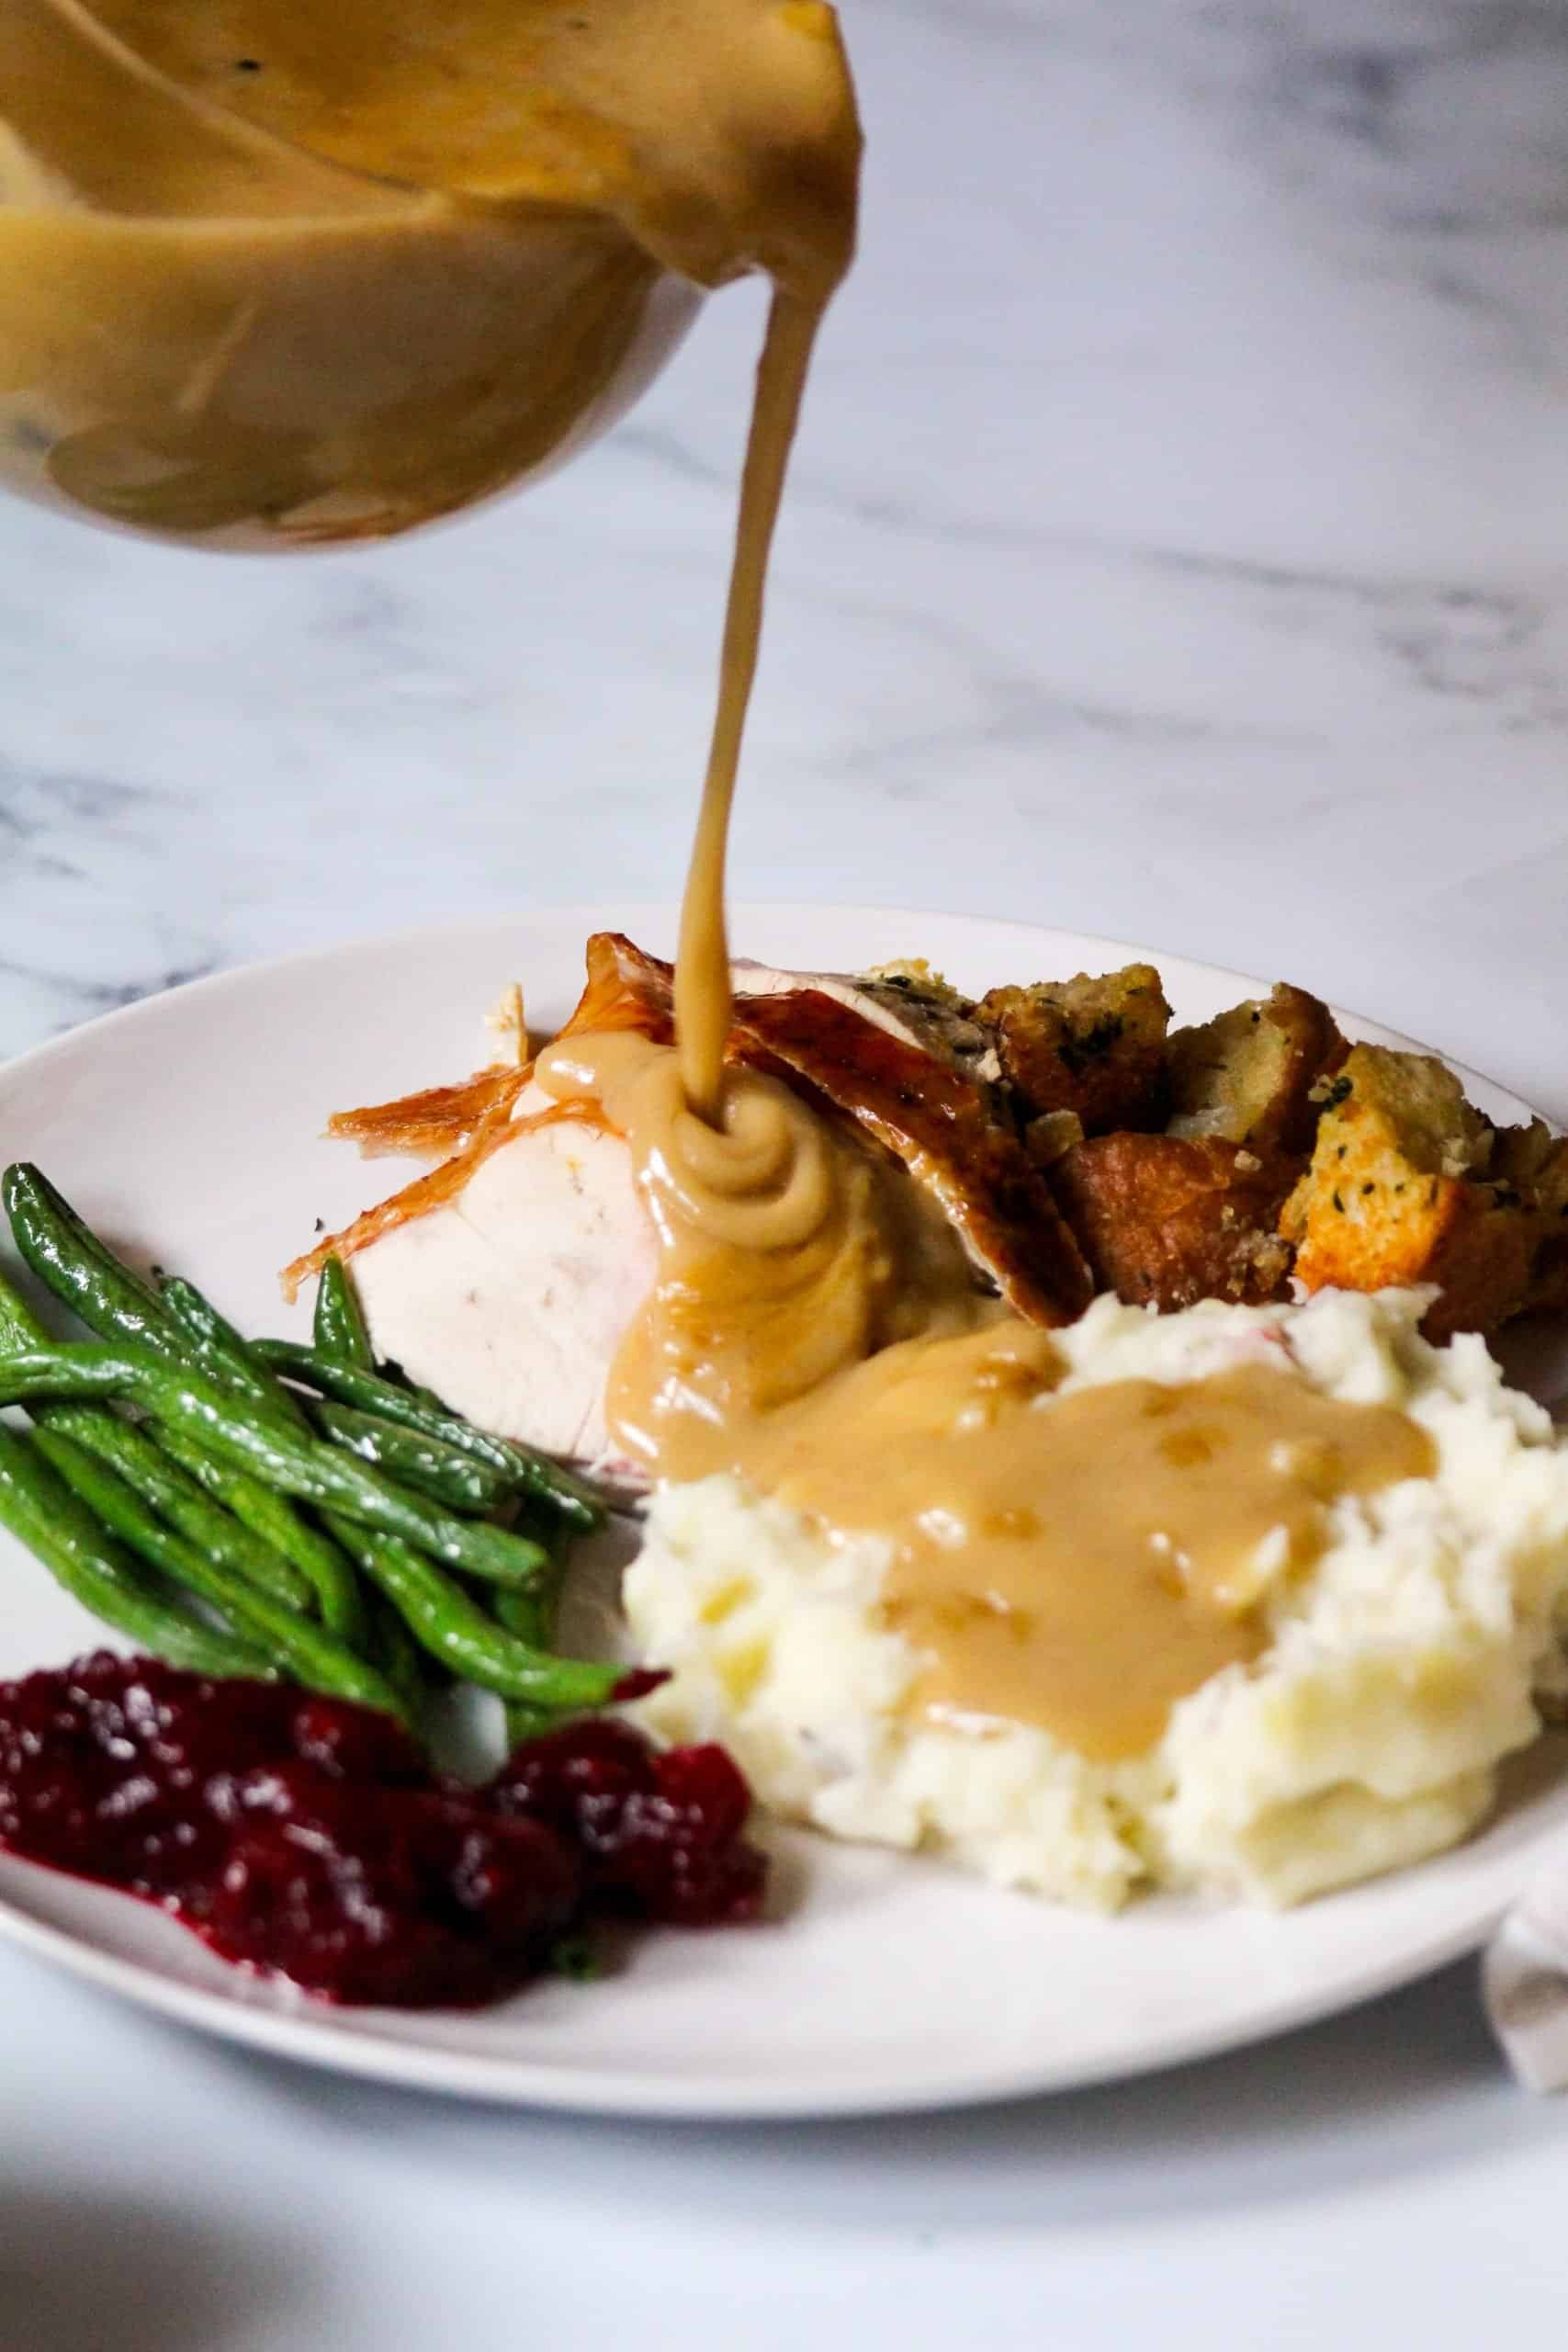 How to Make Gravy from Turkey Pan Drippings